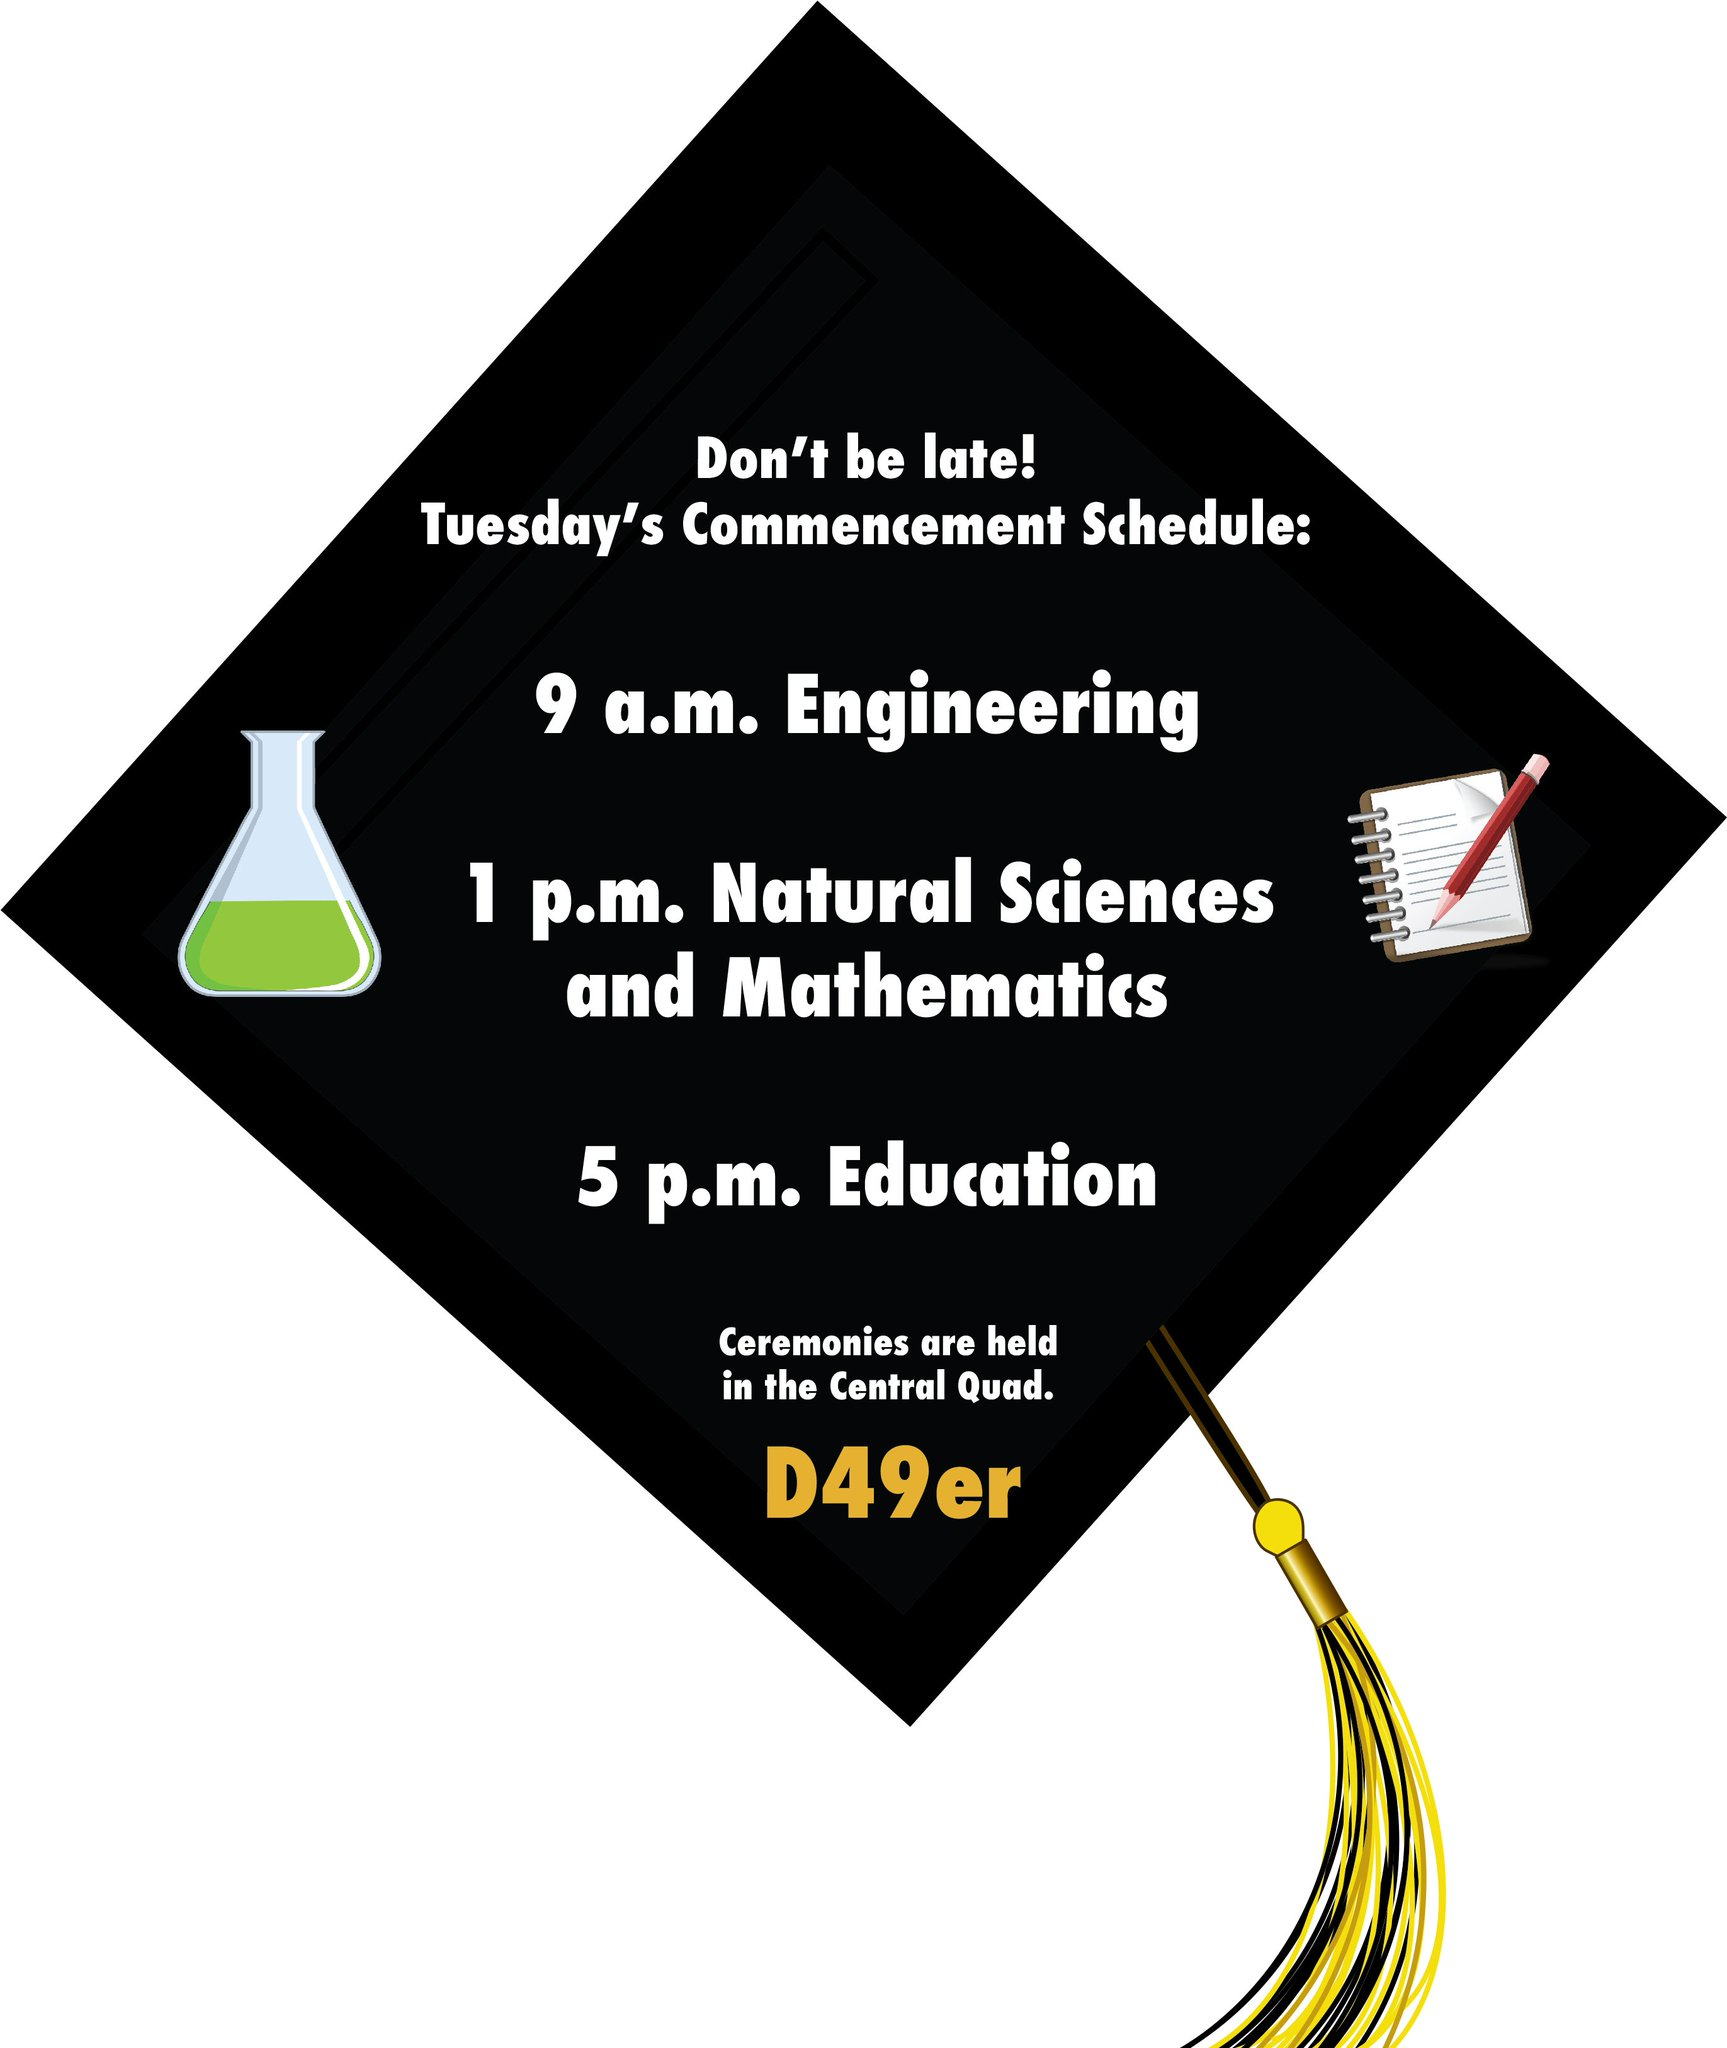 Don't be late to commencement!  The @CSULB commencement ceremonies start tomorrow at 9 a.m! #CSULB #Graduation #Classof2017 https://t.co/ZrSOax0OJr